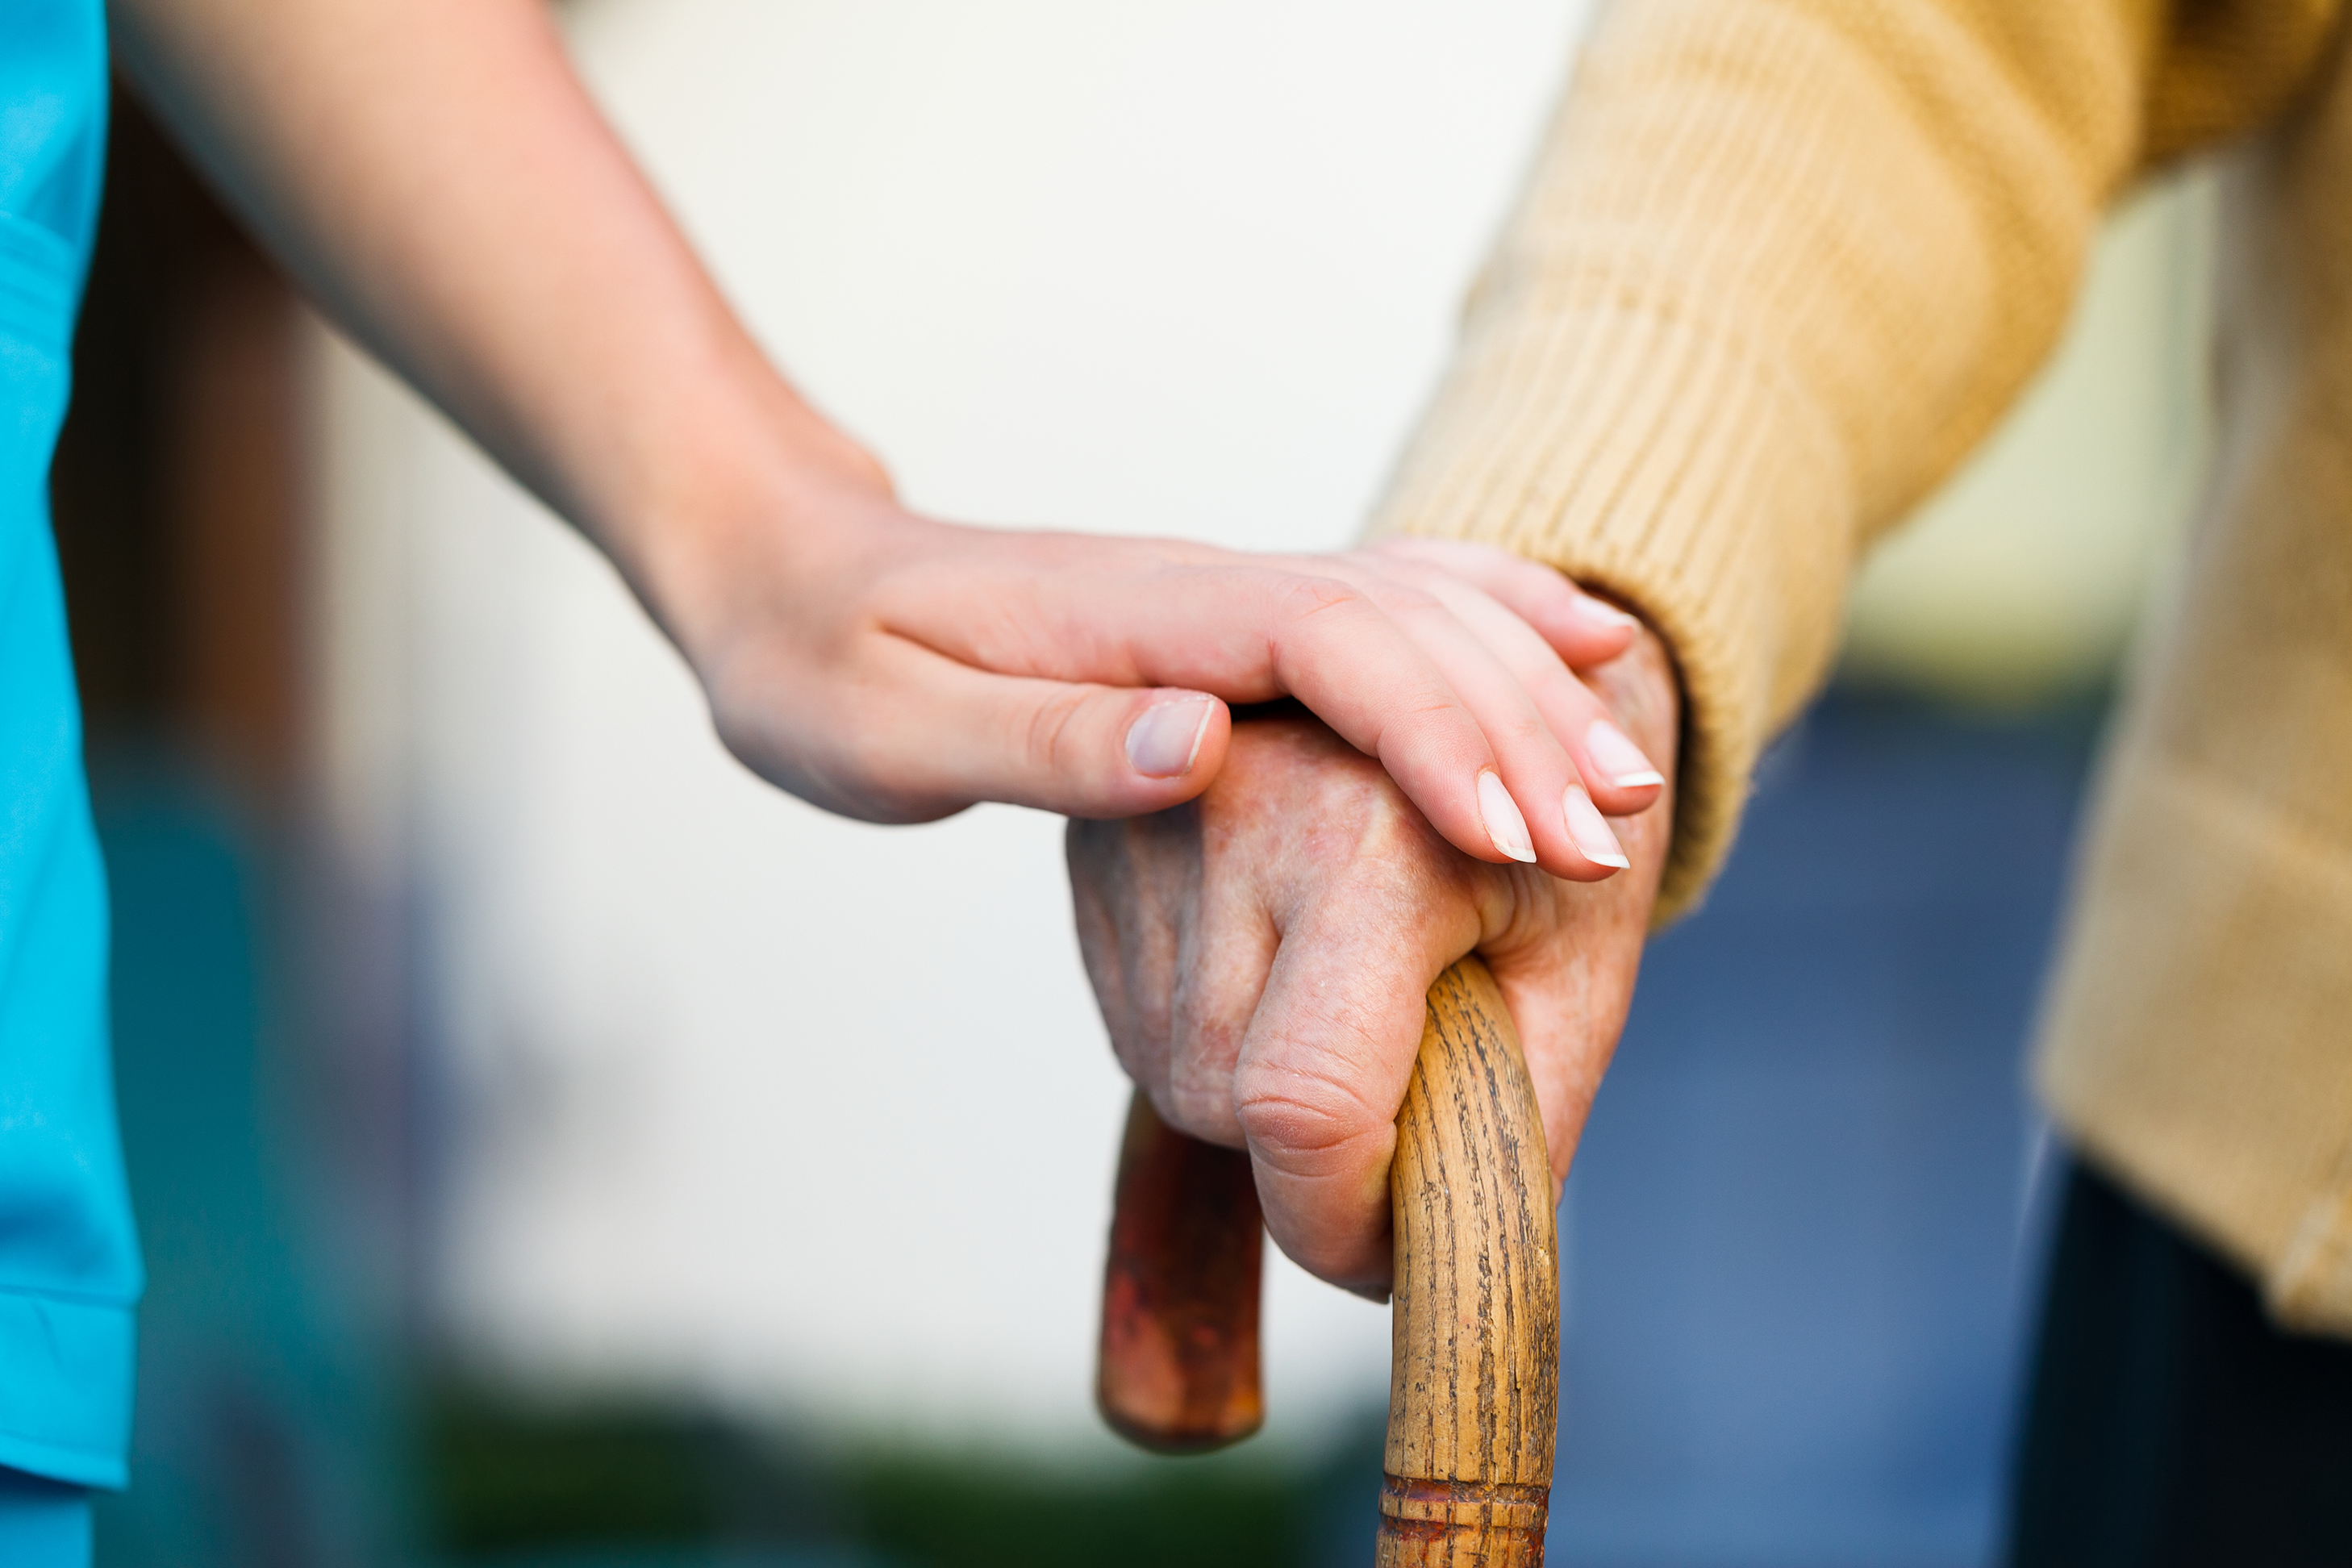 Picture of Supportive Caregiver Hands & Elderly Hands on Cane